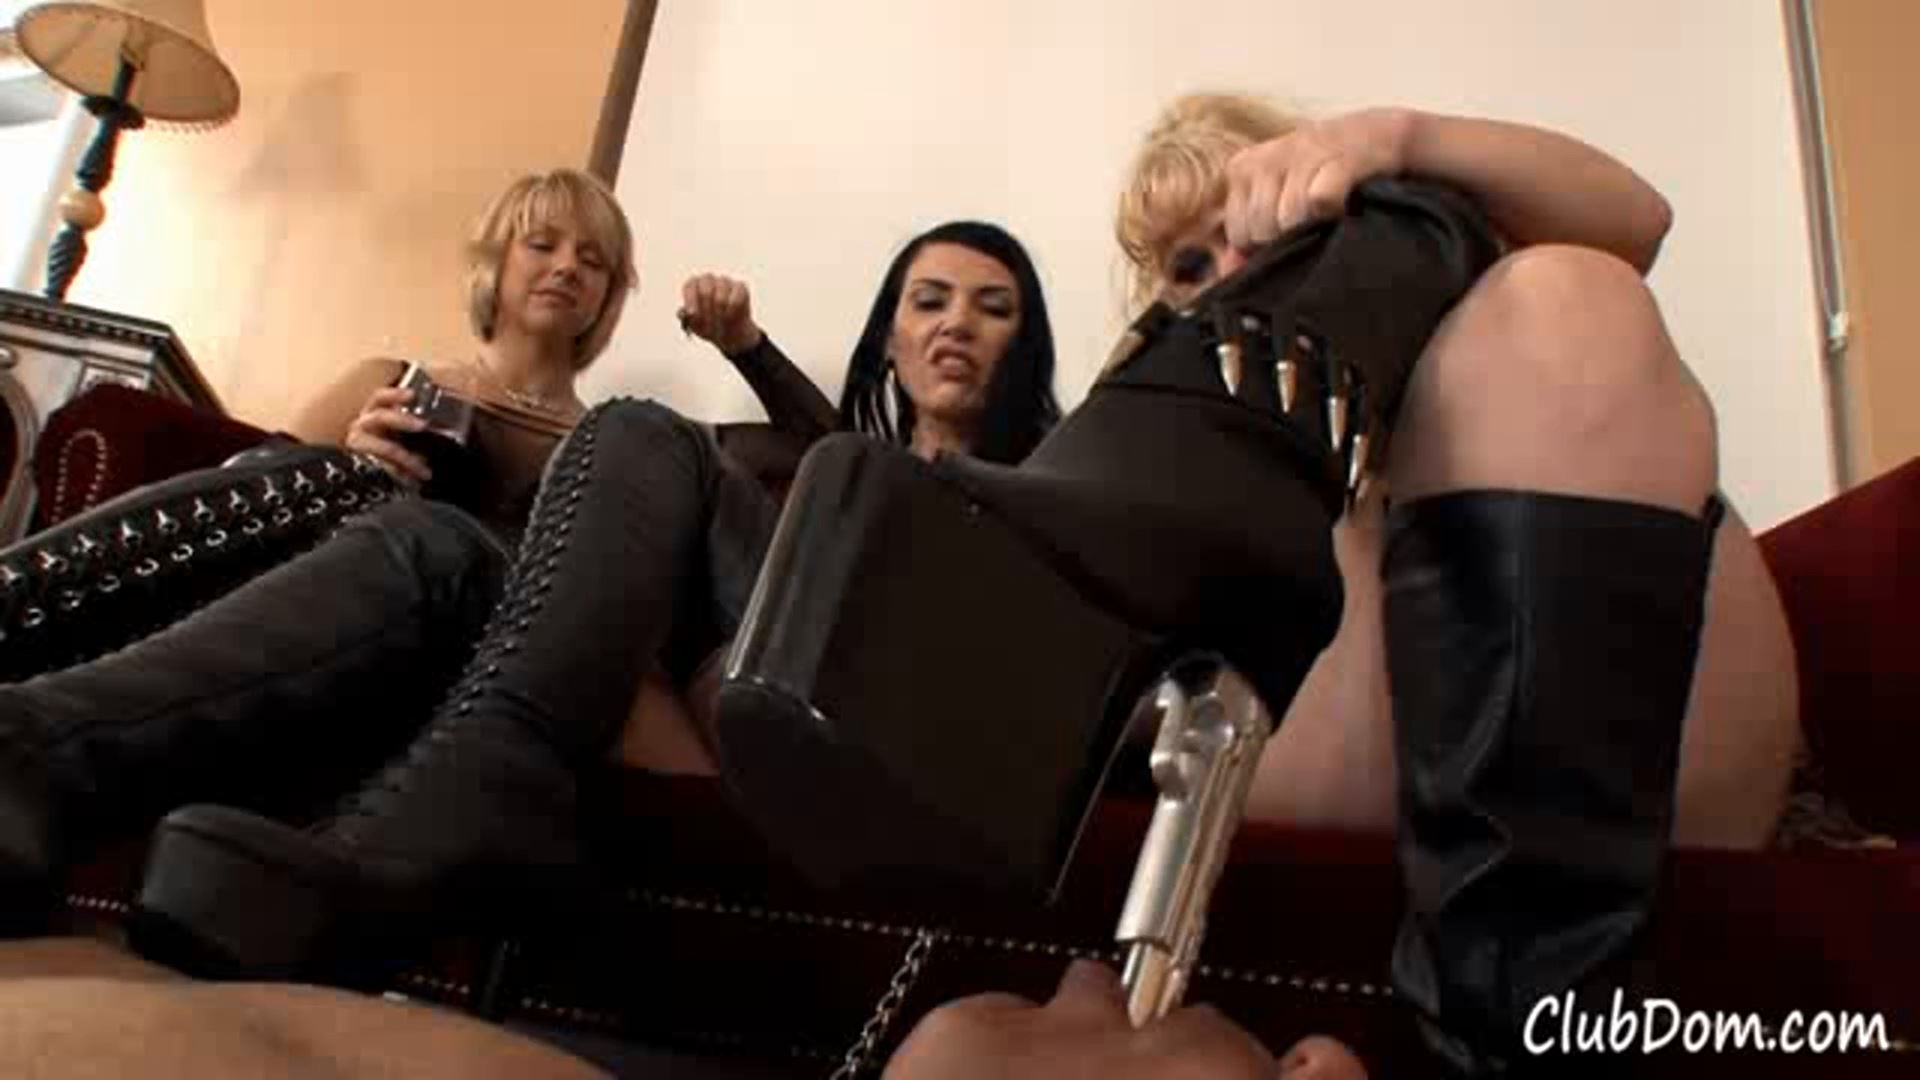 Goddess Brianna, Simone Kross In Scene: Boot Cleaning Games - CLUBDOM / RUTHLESSVIXEN - FULL HD/1080p/MP4